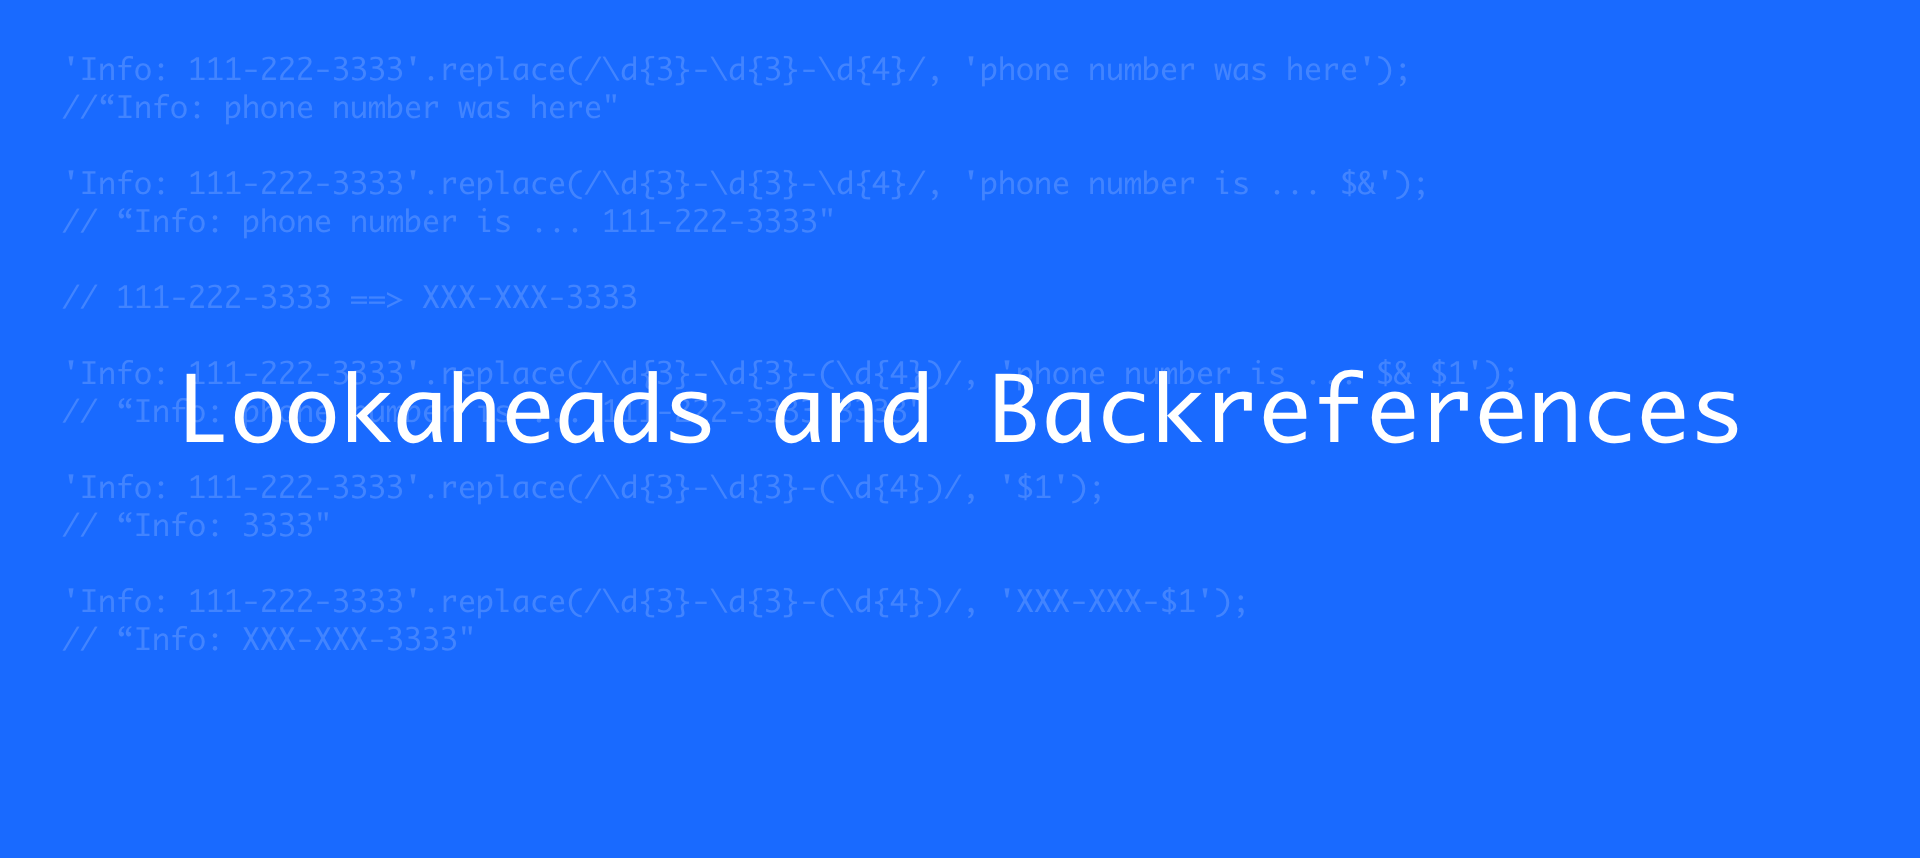 regex-lookaheads-and-backreferences@2x.png